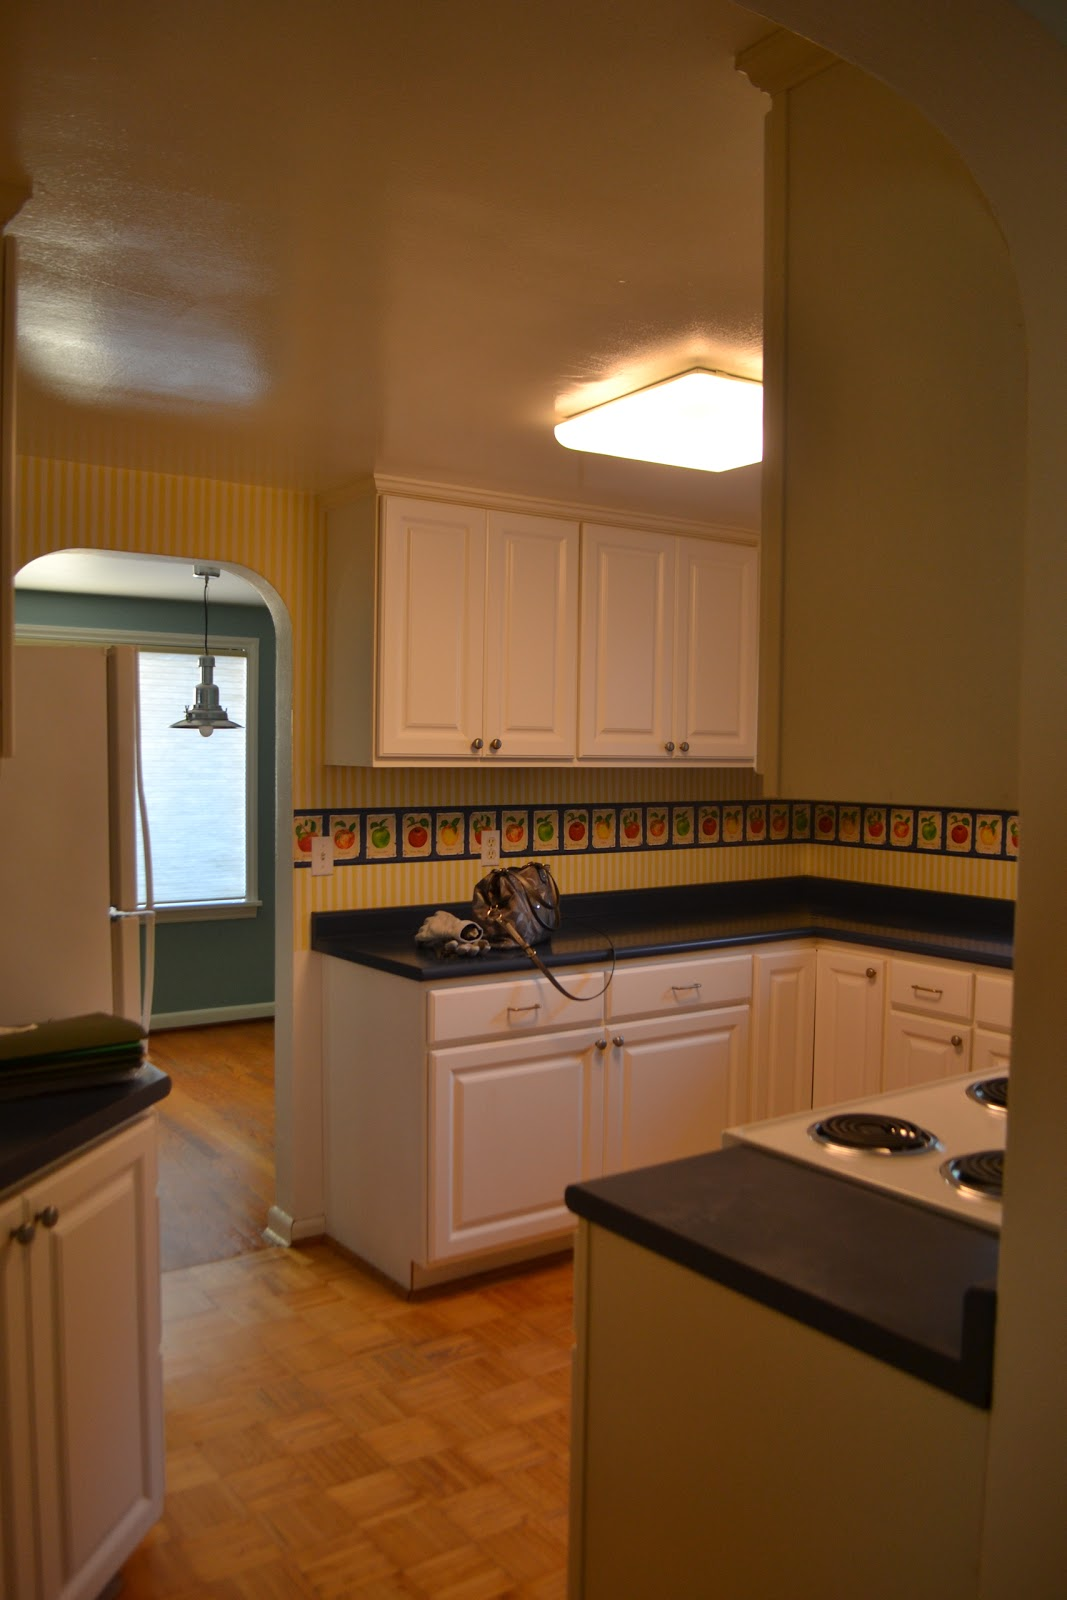 Yes, My Friends, Thatu0027s Multicolored Apple Border On Top Of Yellow And  White Striped Wallpaper. The White Cabinets Arenu0027t Bad At All!